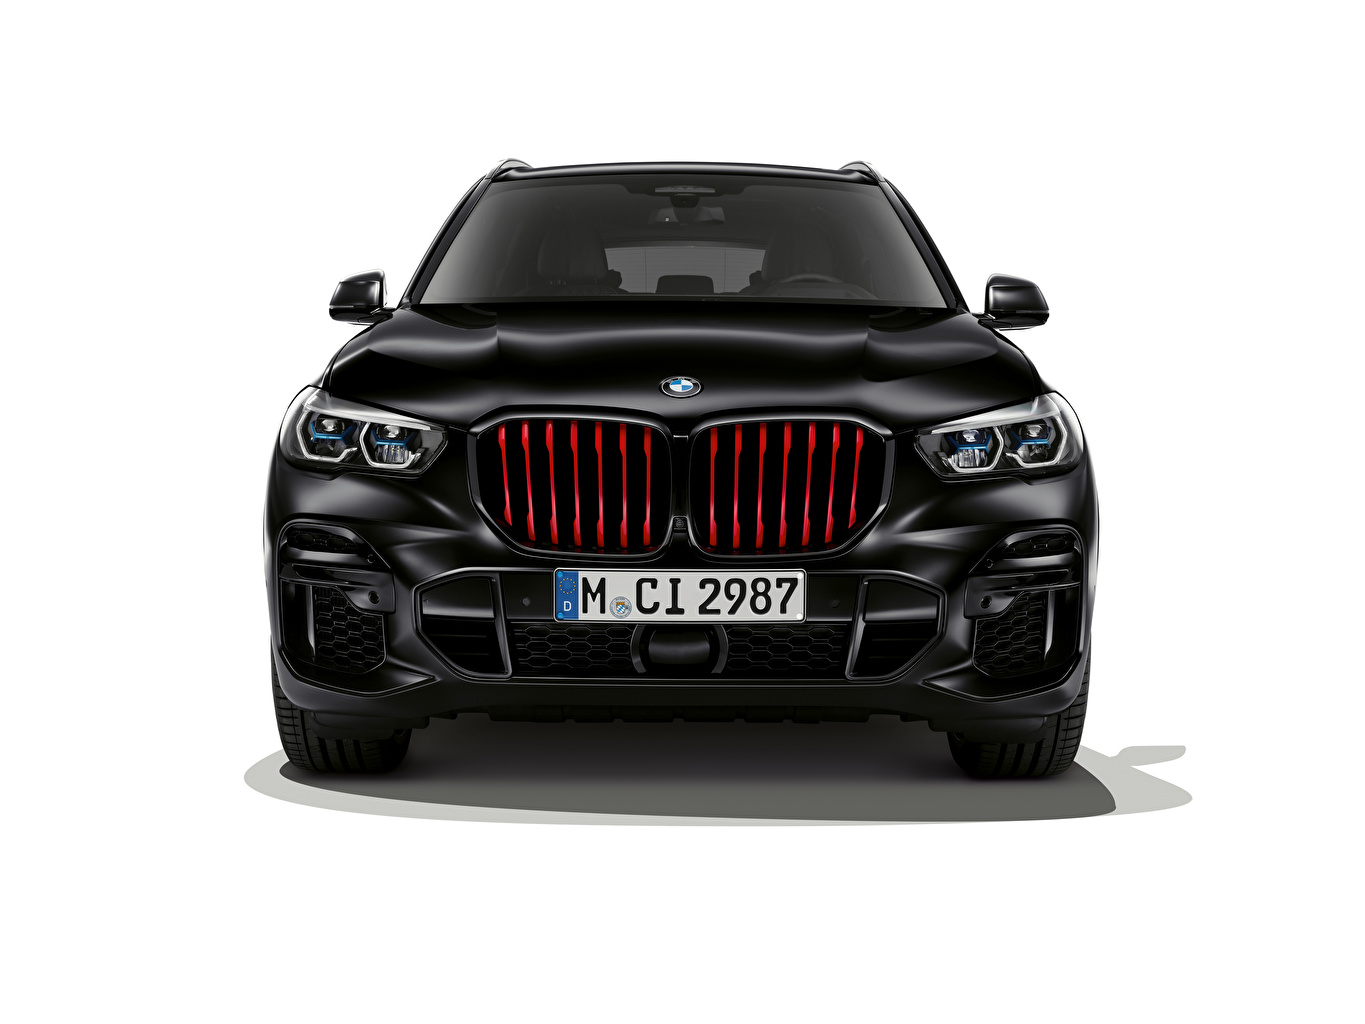 Pictures BMW Crossover X5 M50i Edition Black Vermilion, (Worldwide), (G05), 2021 Cars Front White background CUV auto automobile